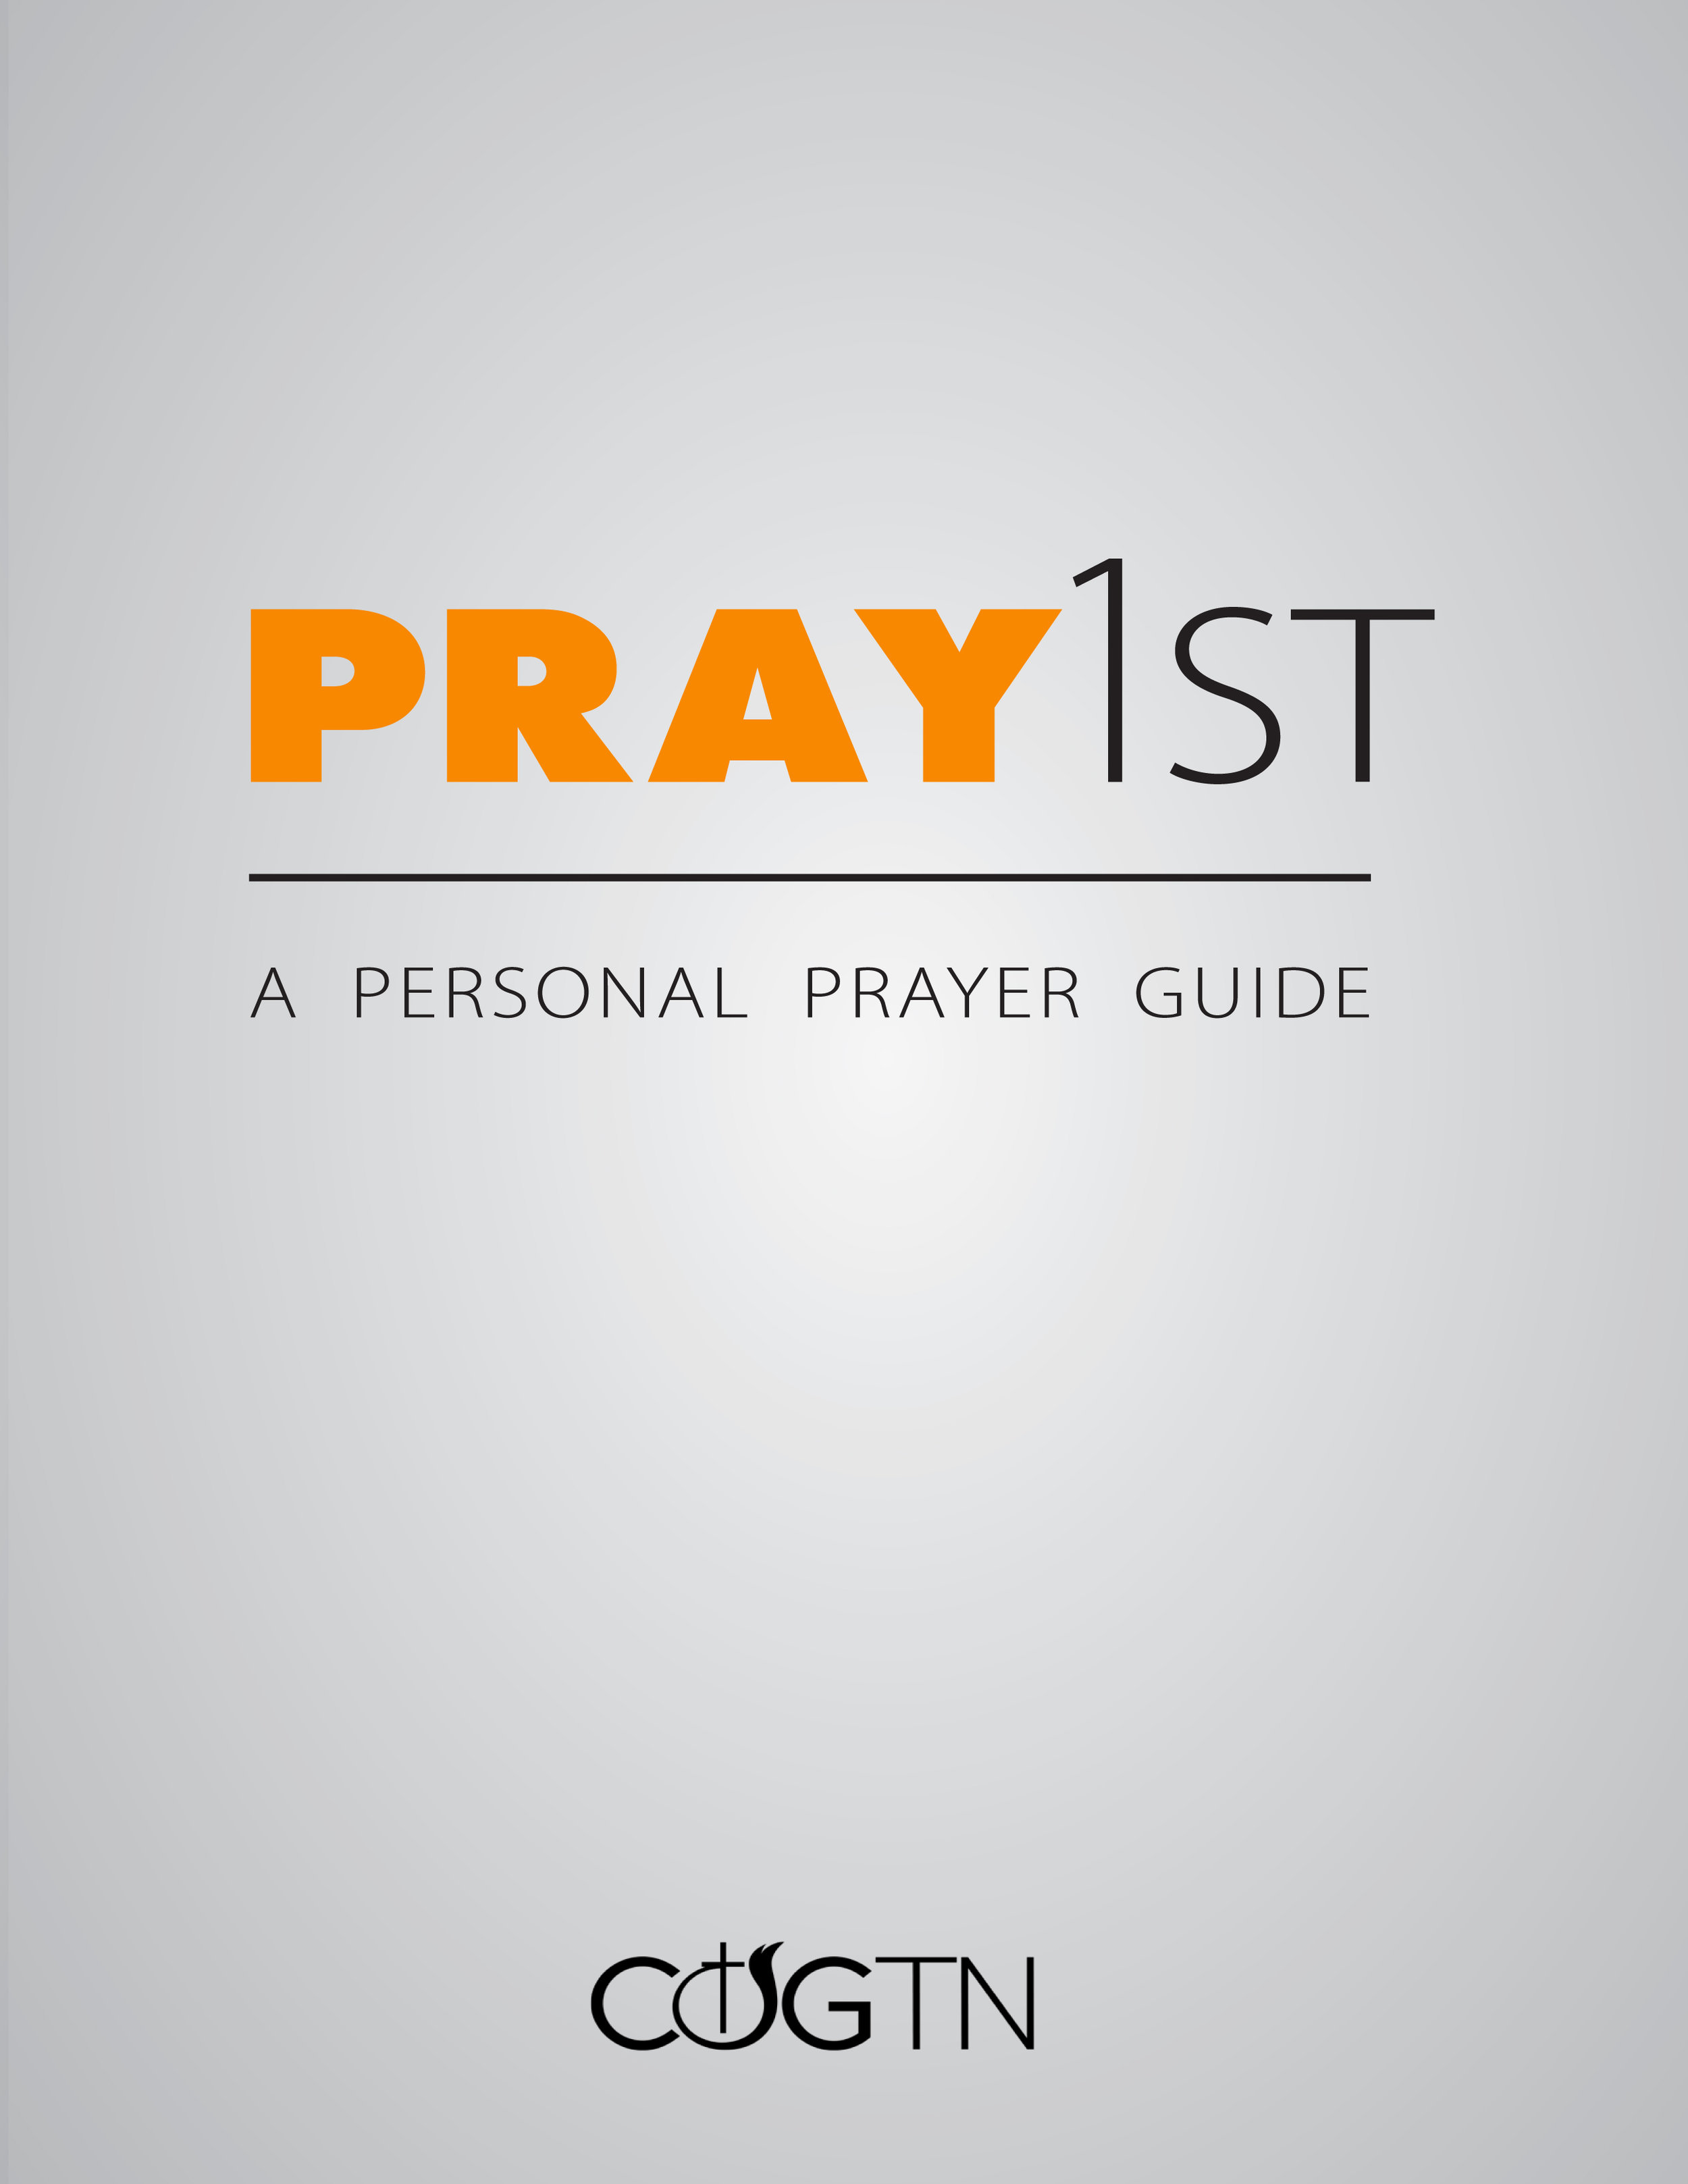 Pray First Picture.jpg